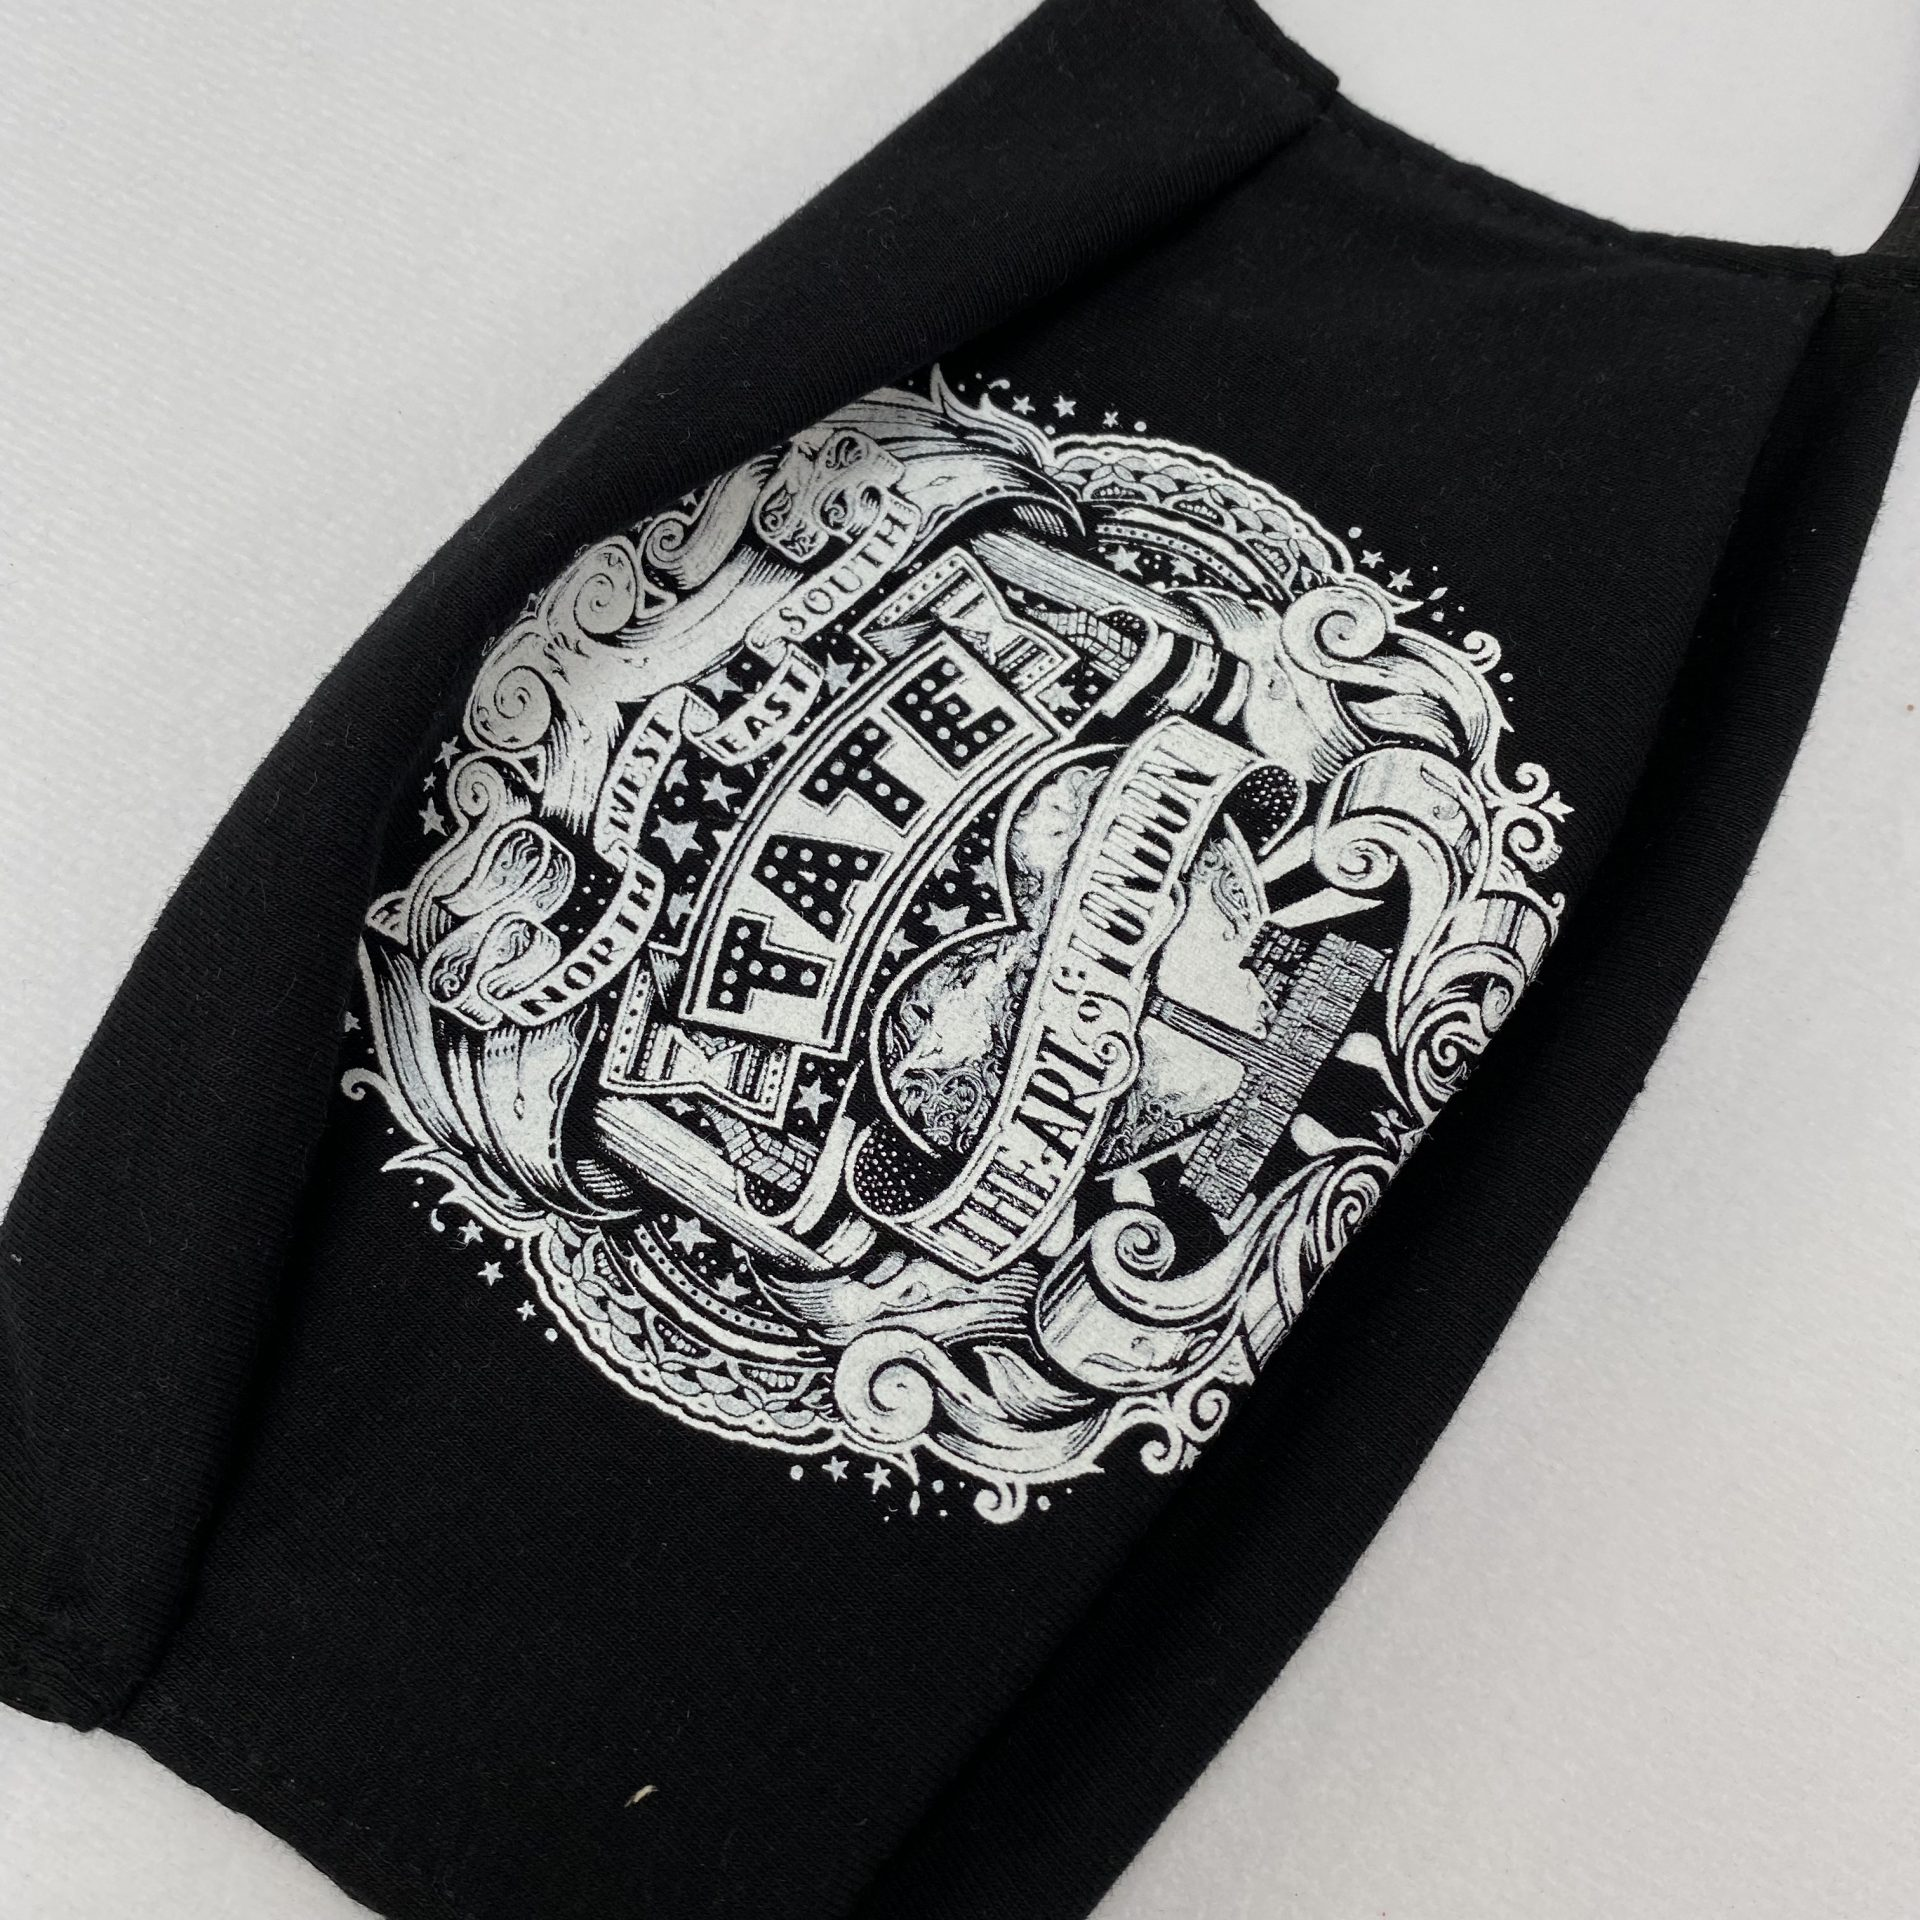 Printed textile face mask made in the UK by Paul Bristow's